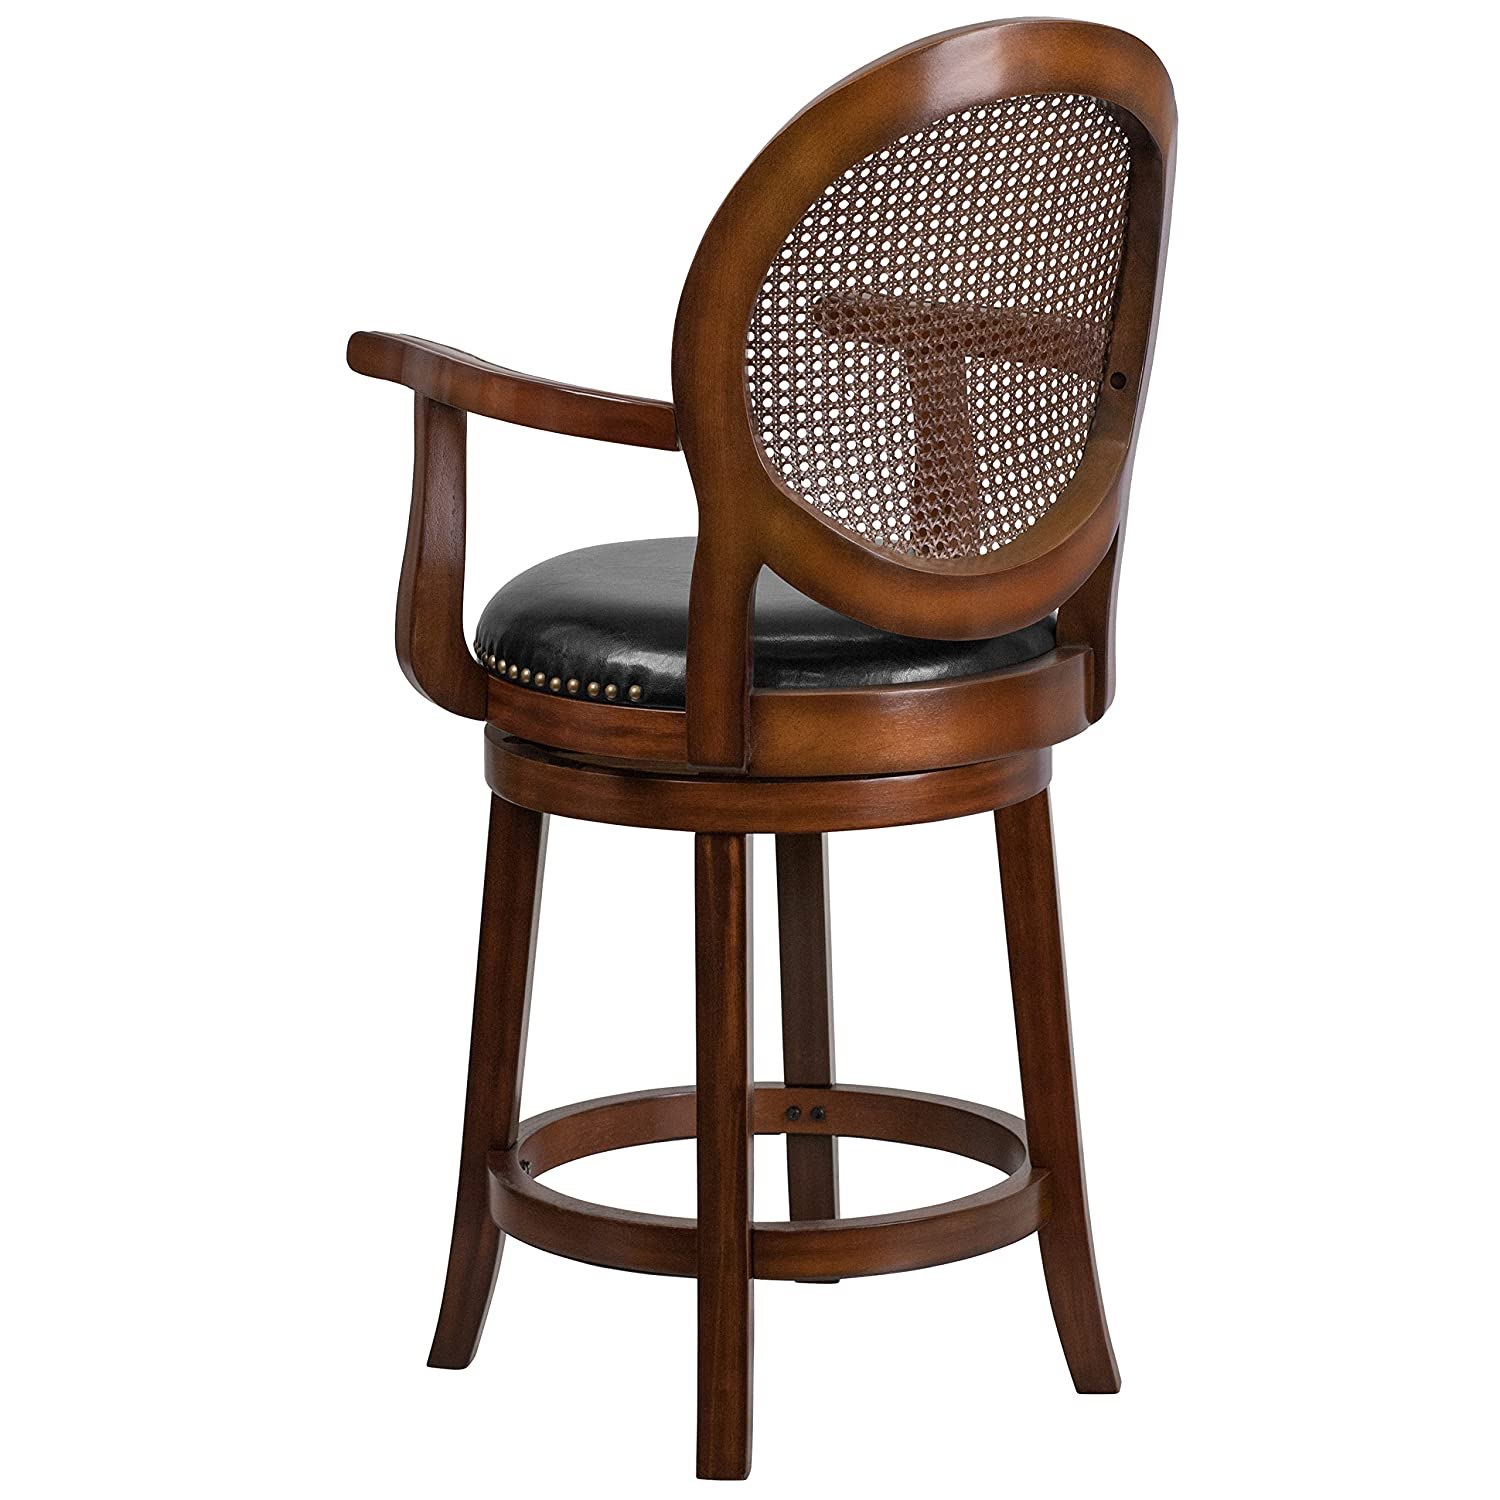 Flash Furniture 26 High Expresso Wood Counter Height Stool with Arms and Black Leather Swivel Seat